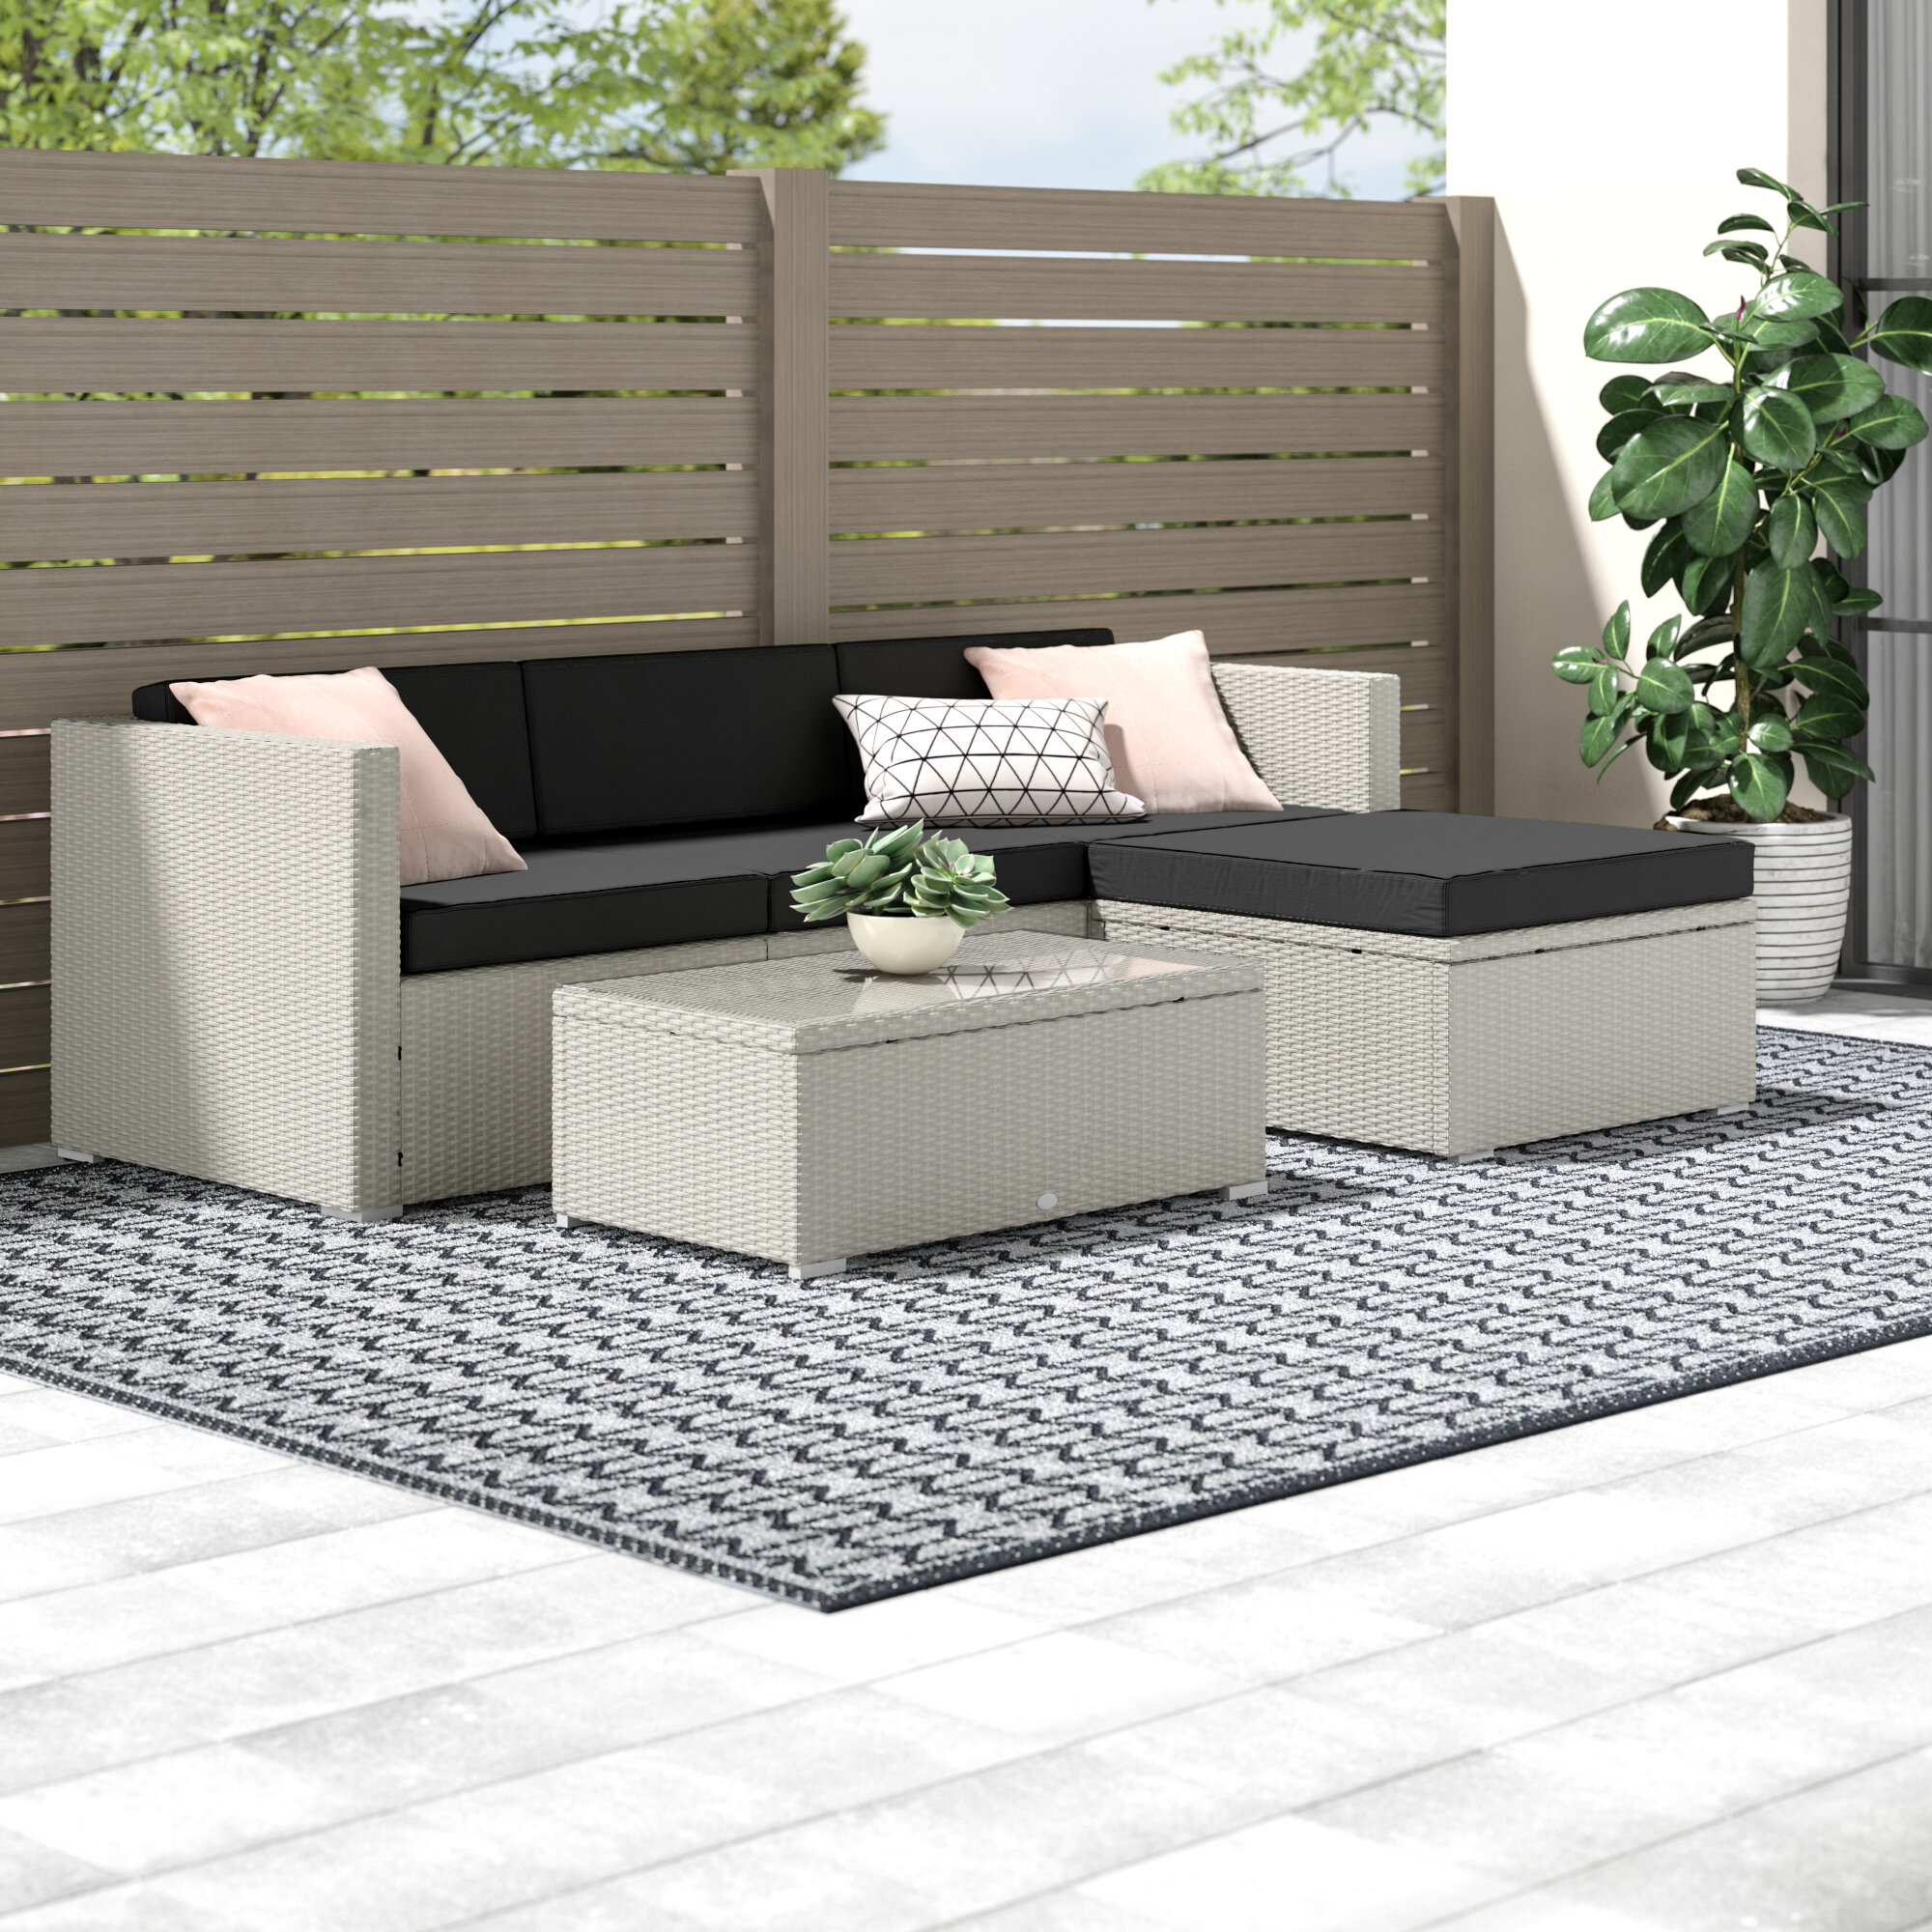 Sol 72 Outdoor Somersworth 4 Seater Rattan Sofa Set Reviews